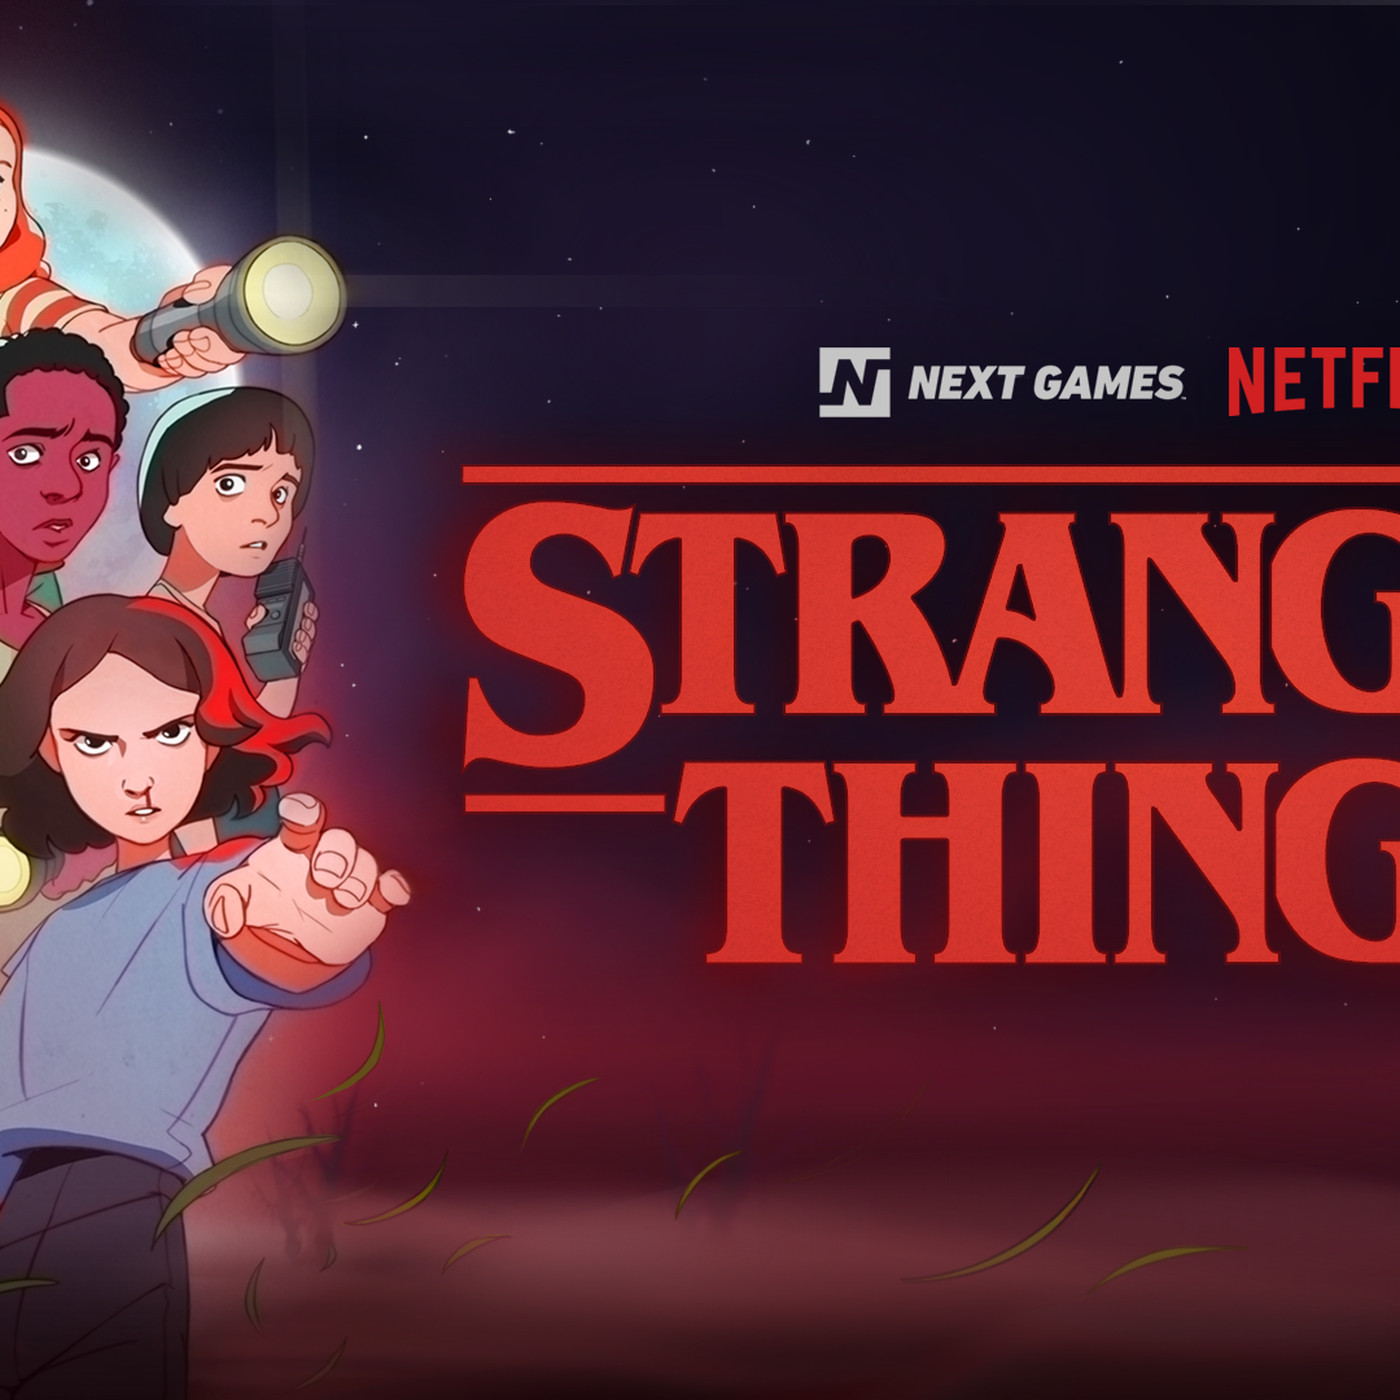 Stranger Things Location Based Rpg To Arrive On Ios And Android In 2020 Polygon